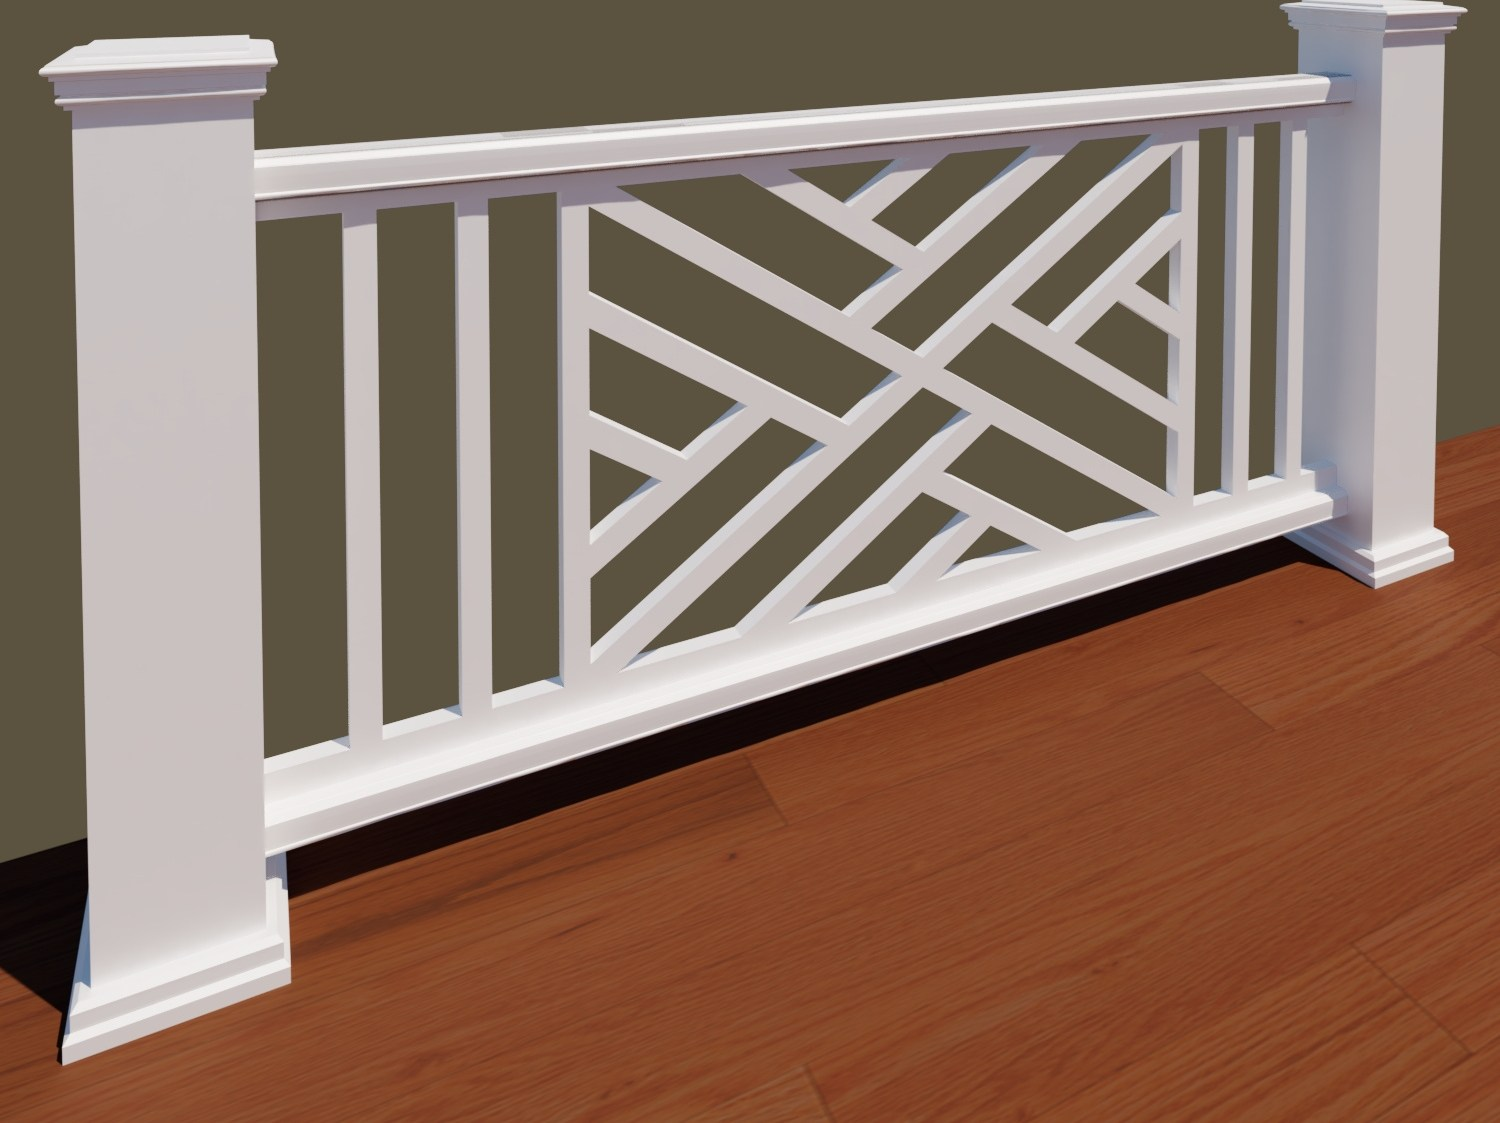 The Chippendale Panel The Porch Company   Pvc Balustrades And Handrails   Stair Railing   Hospital Corridor   Cable Railing Systems   Balcony Railing   Nsto